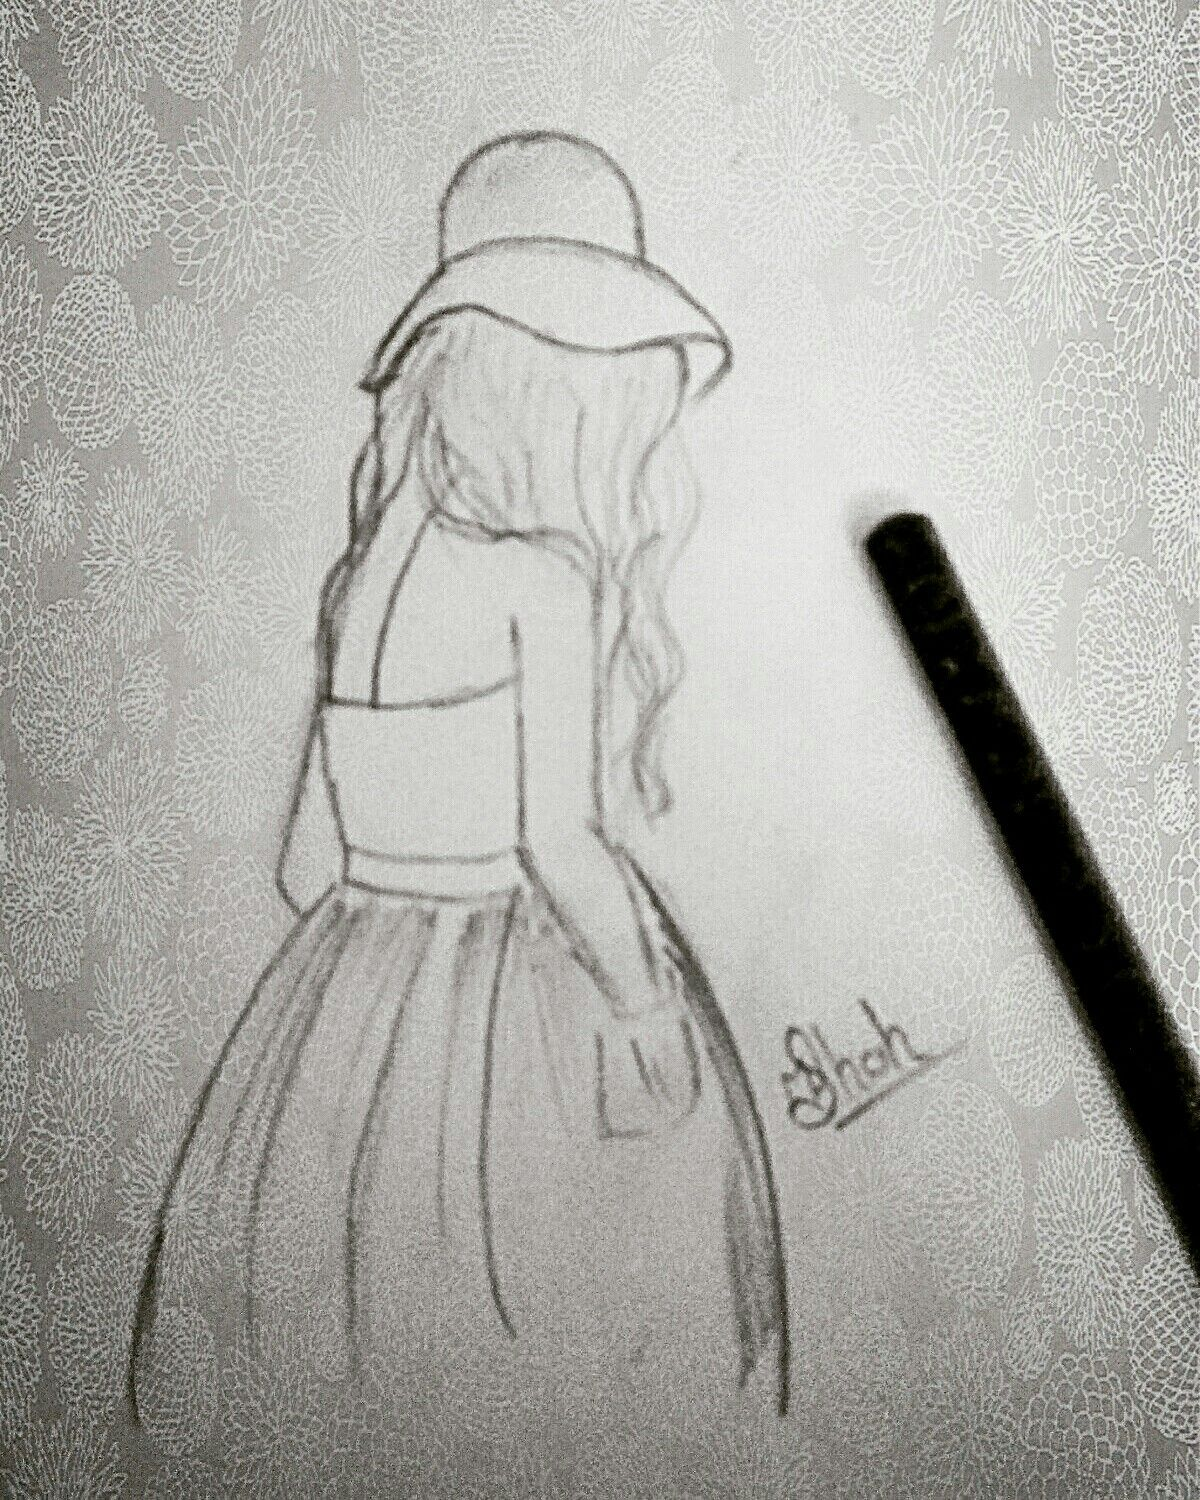 Lonely girl drawing